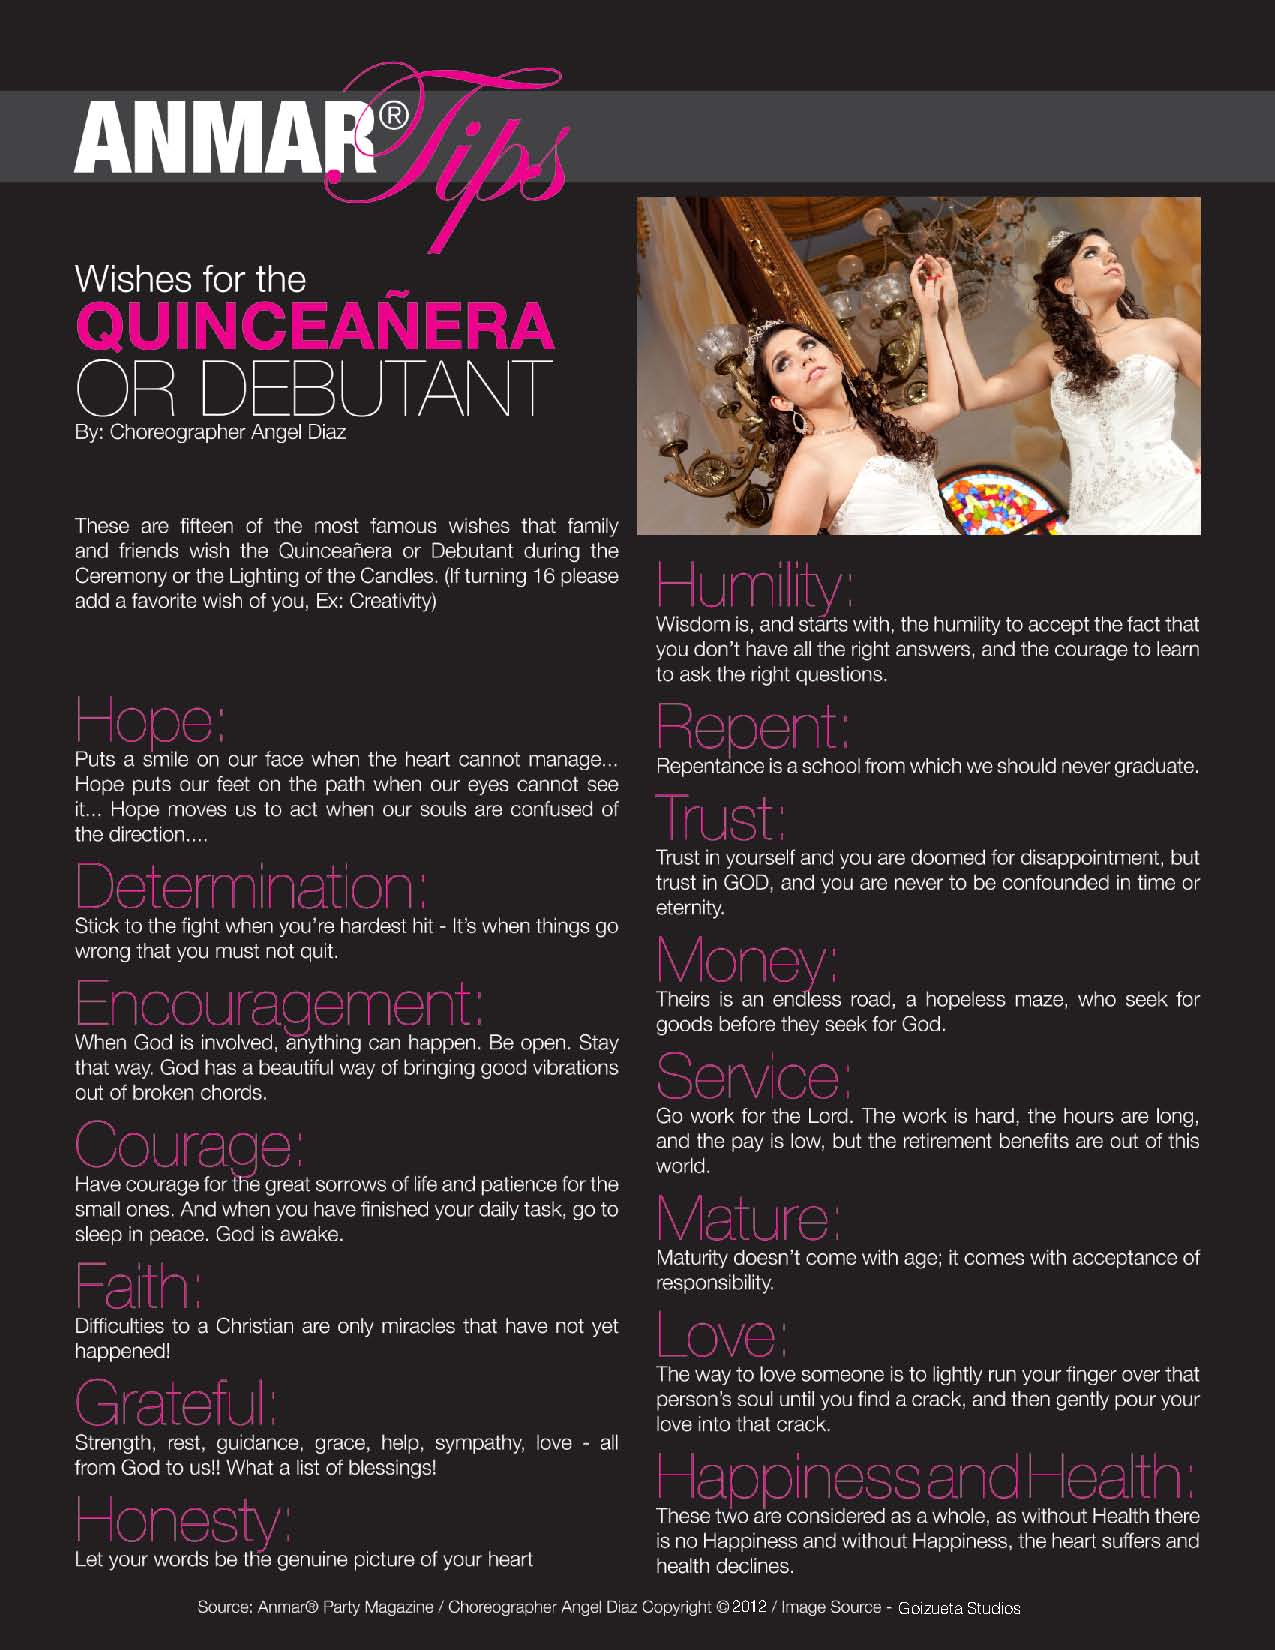 Wishes for the Quinceañera or Sweet 16 Debutant